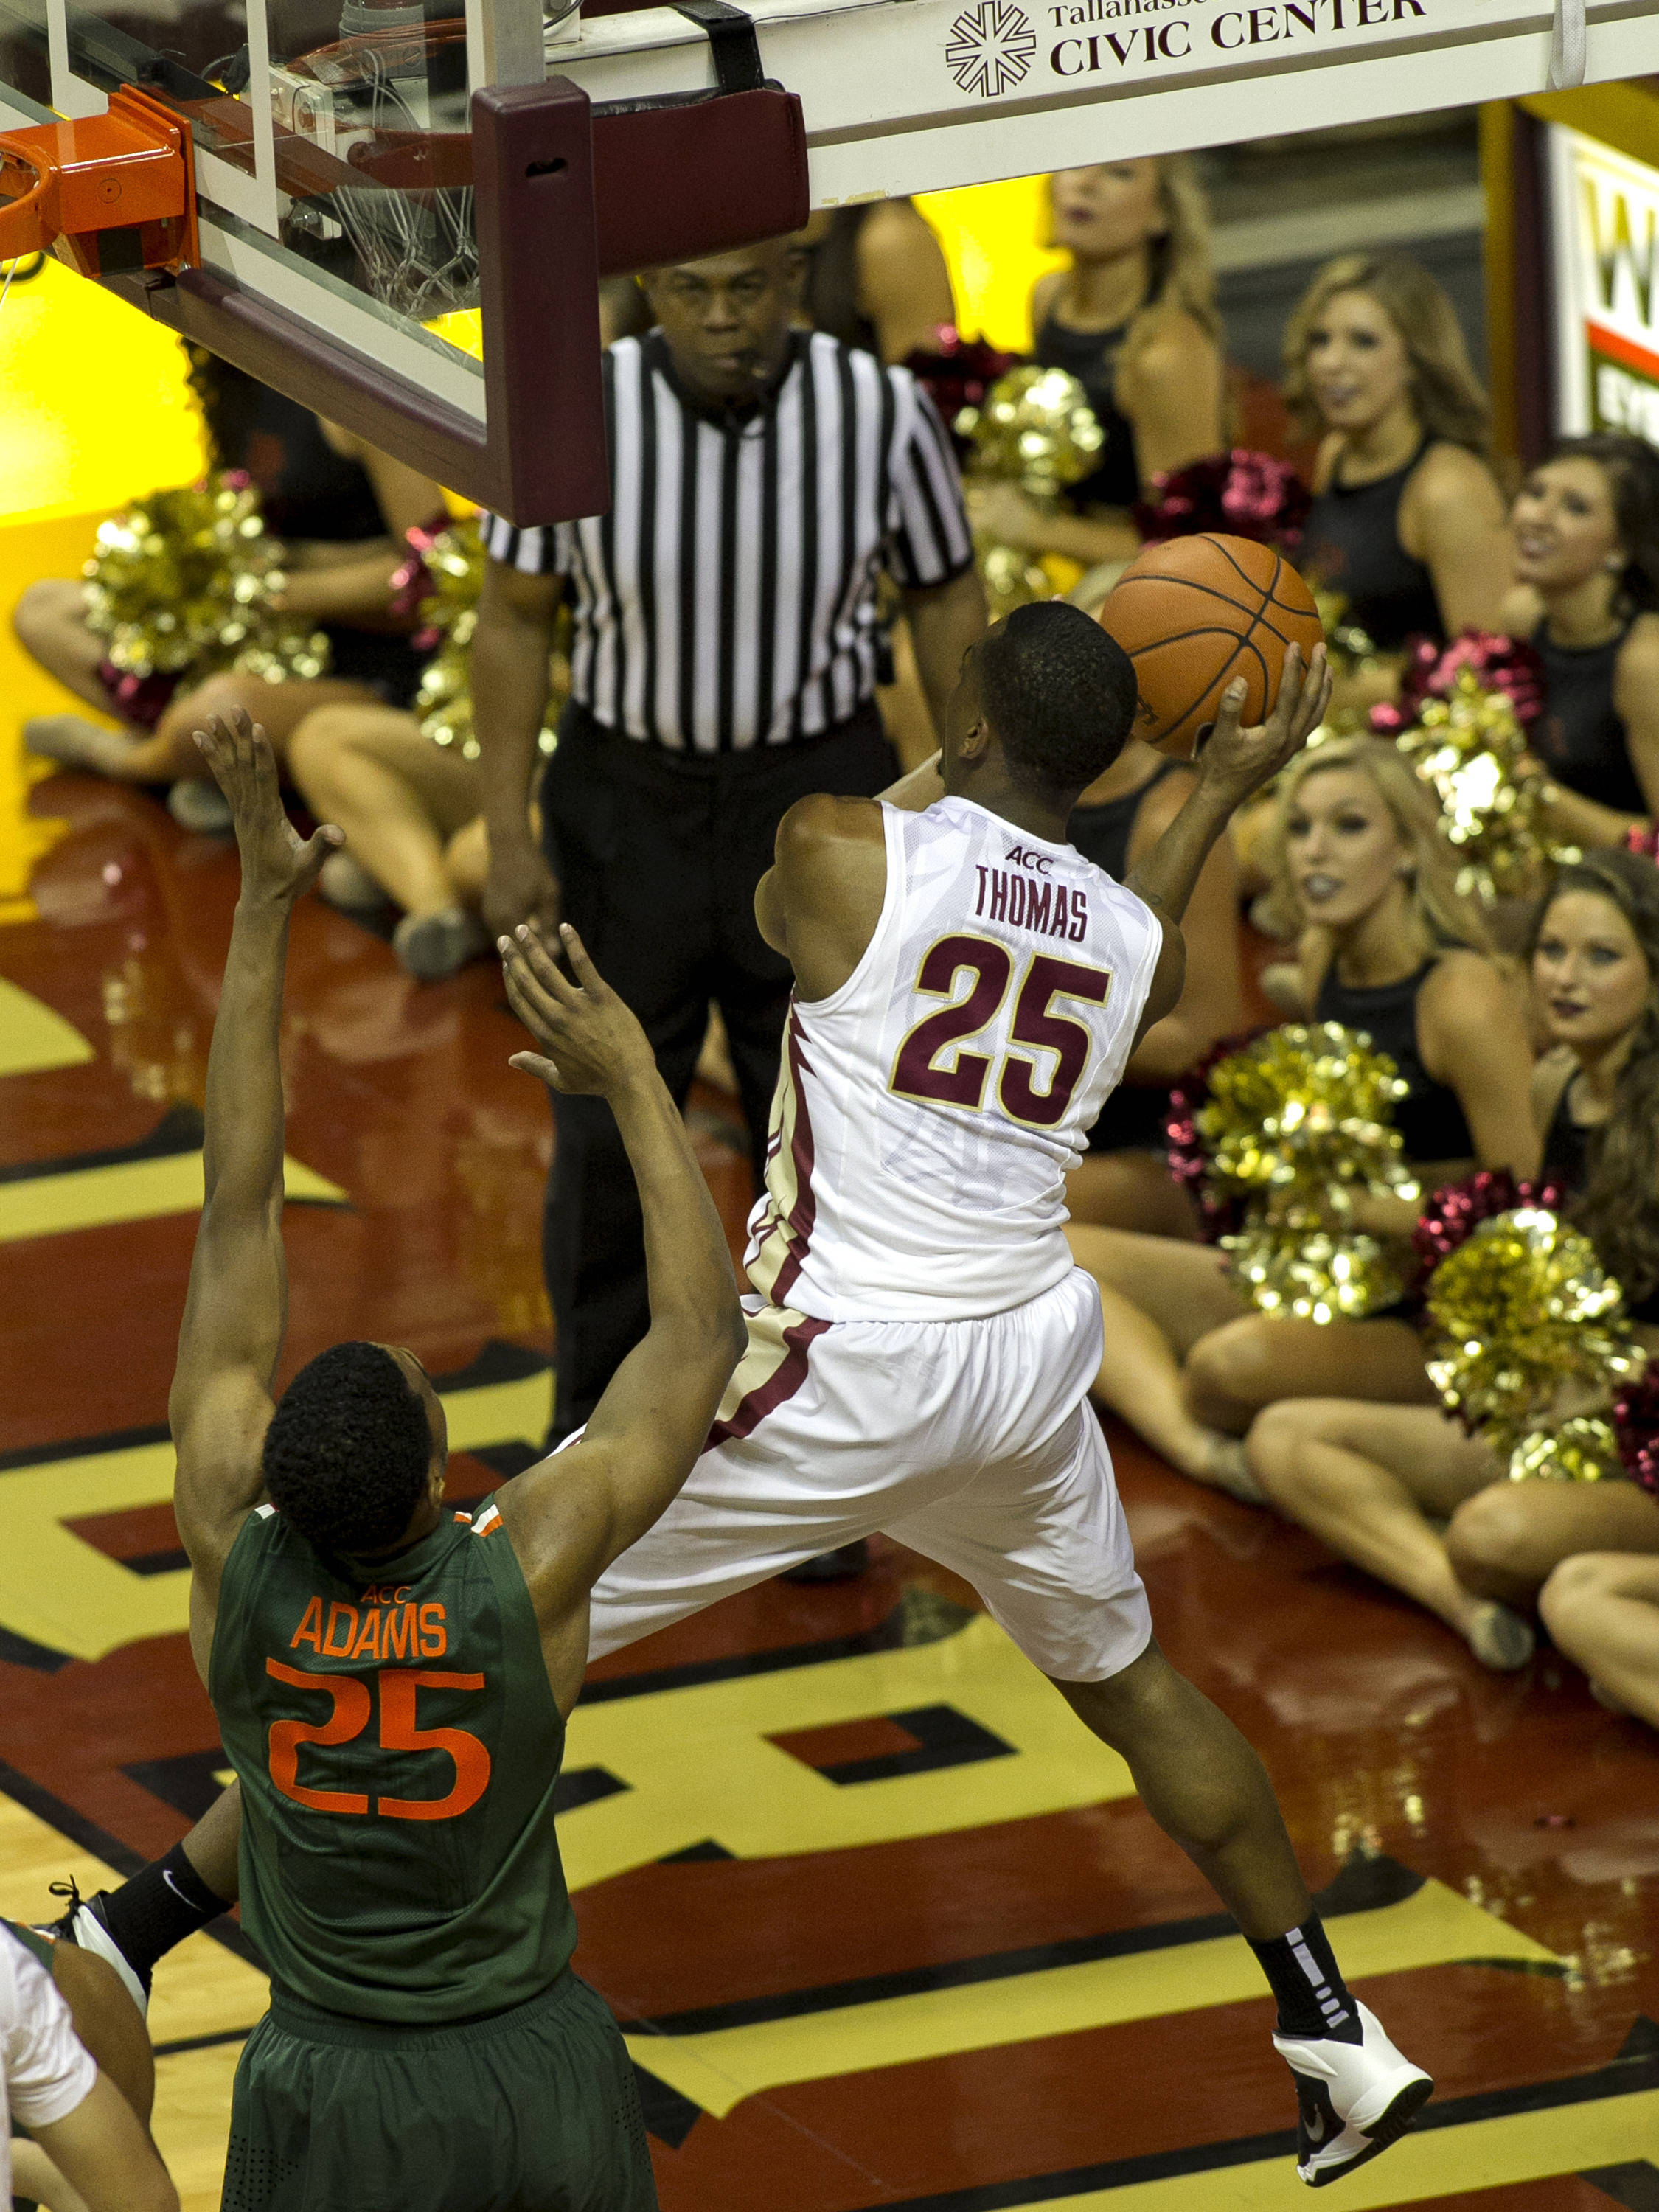 Aaron Thomas (25) goes deep under the basket for a pass, FSU vs Miami, 2-10-14, (Photo's by Steve Musco)